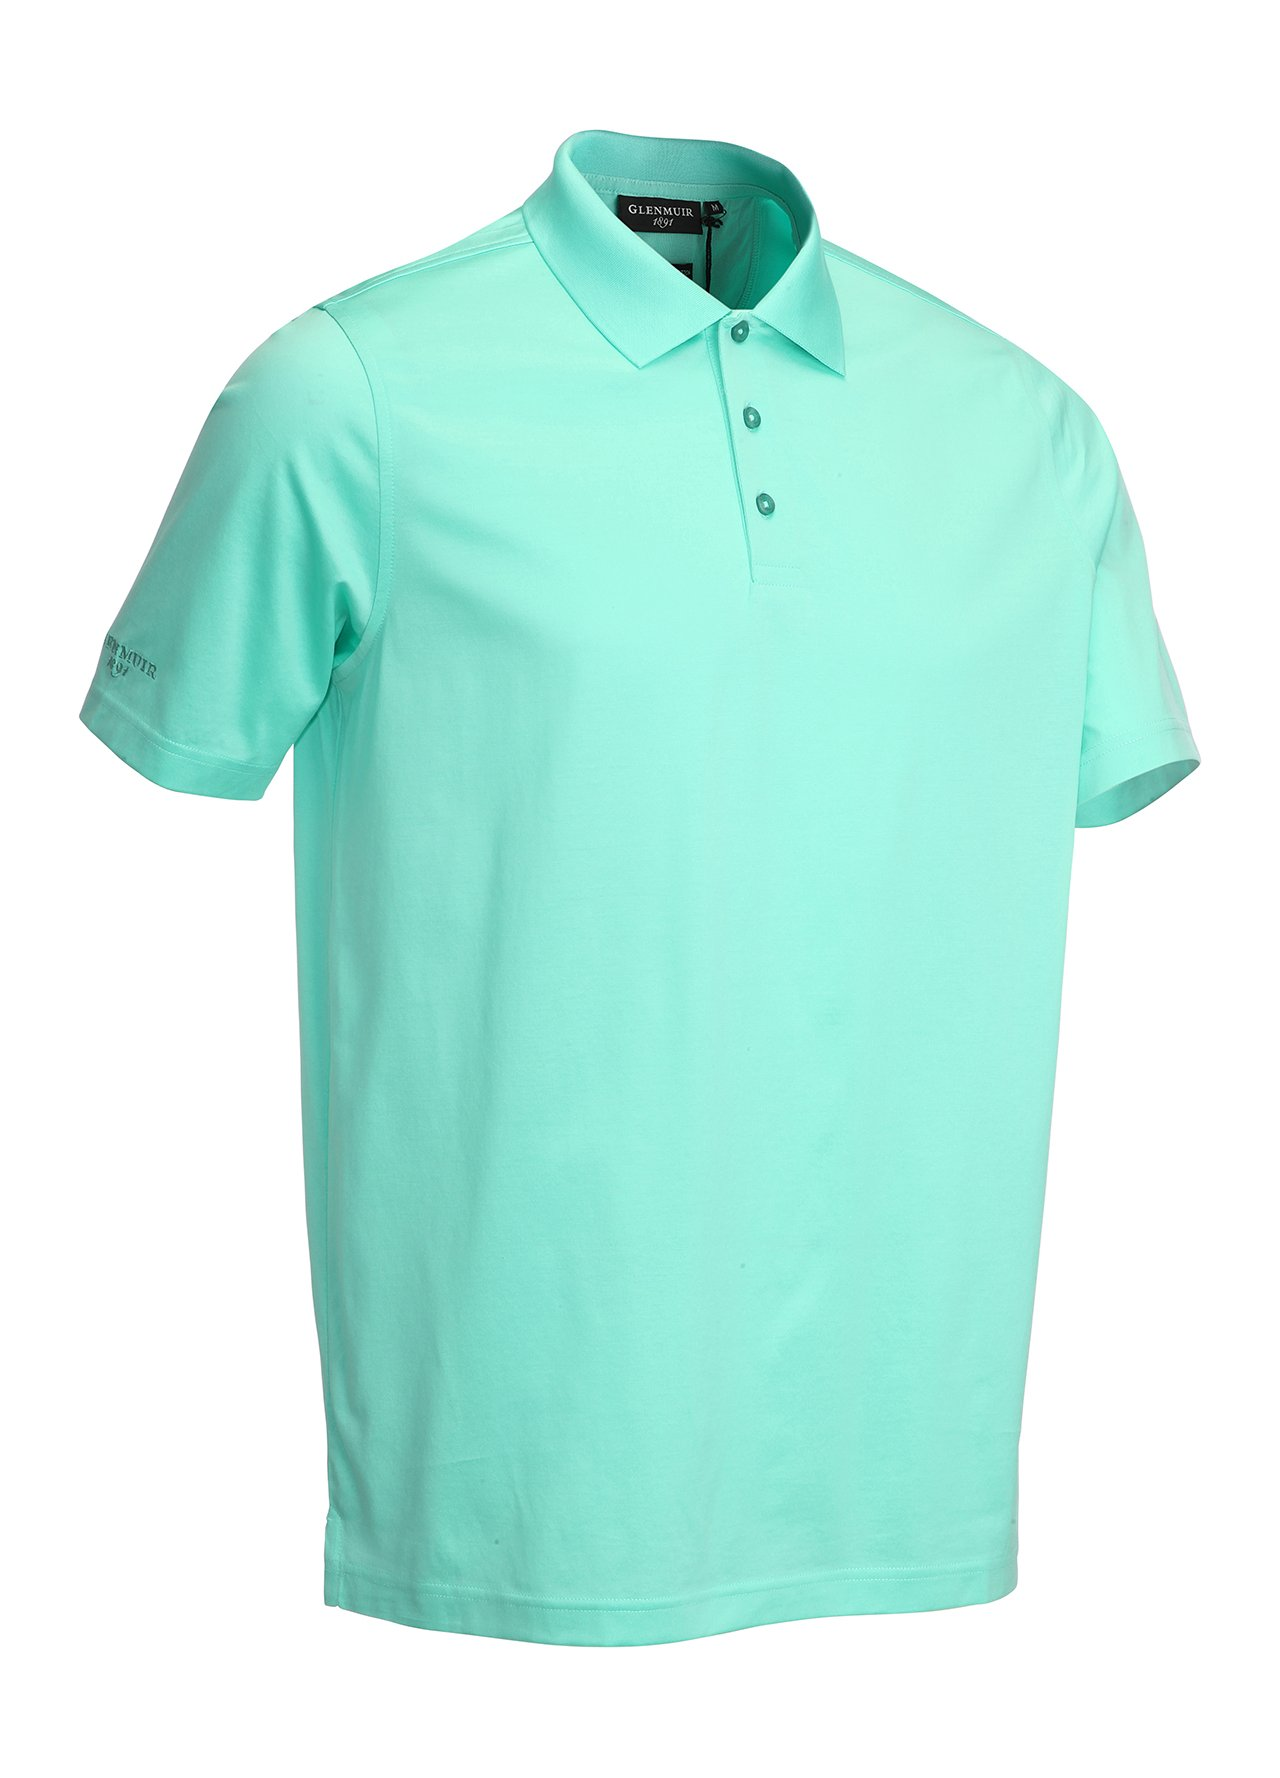 Glenmuir mercerised golf polo shirt spearmint extra large